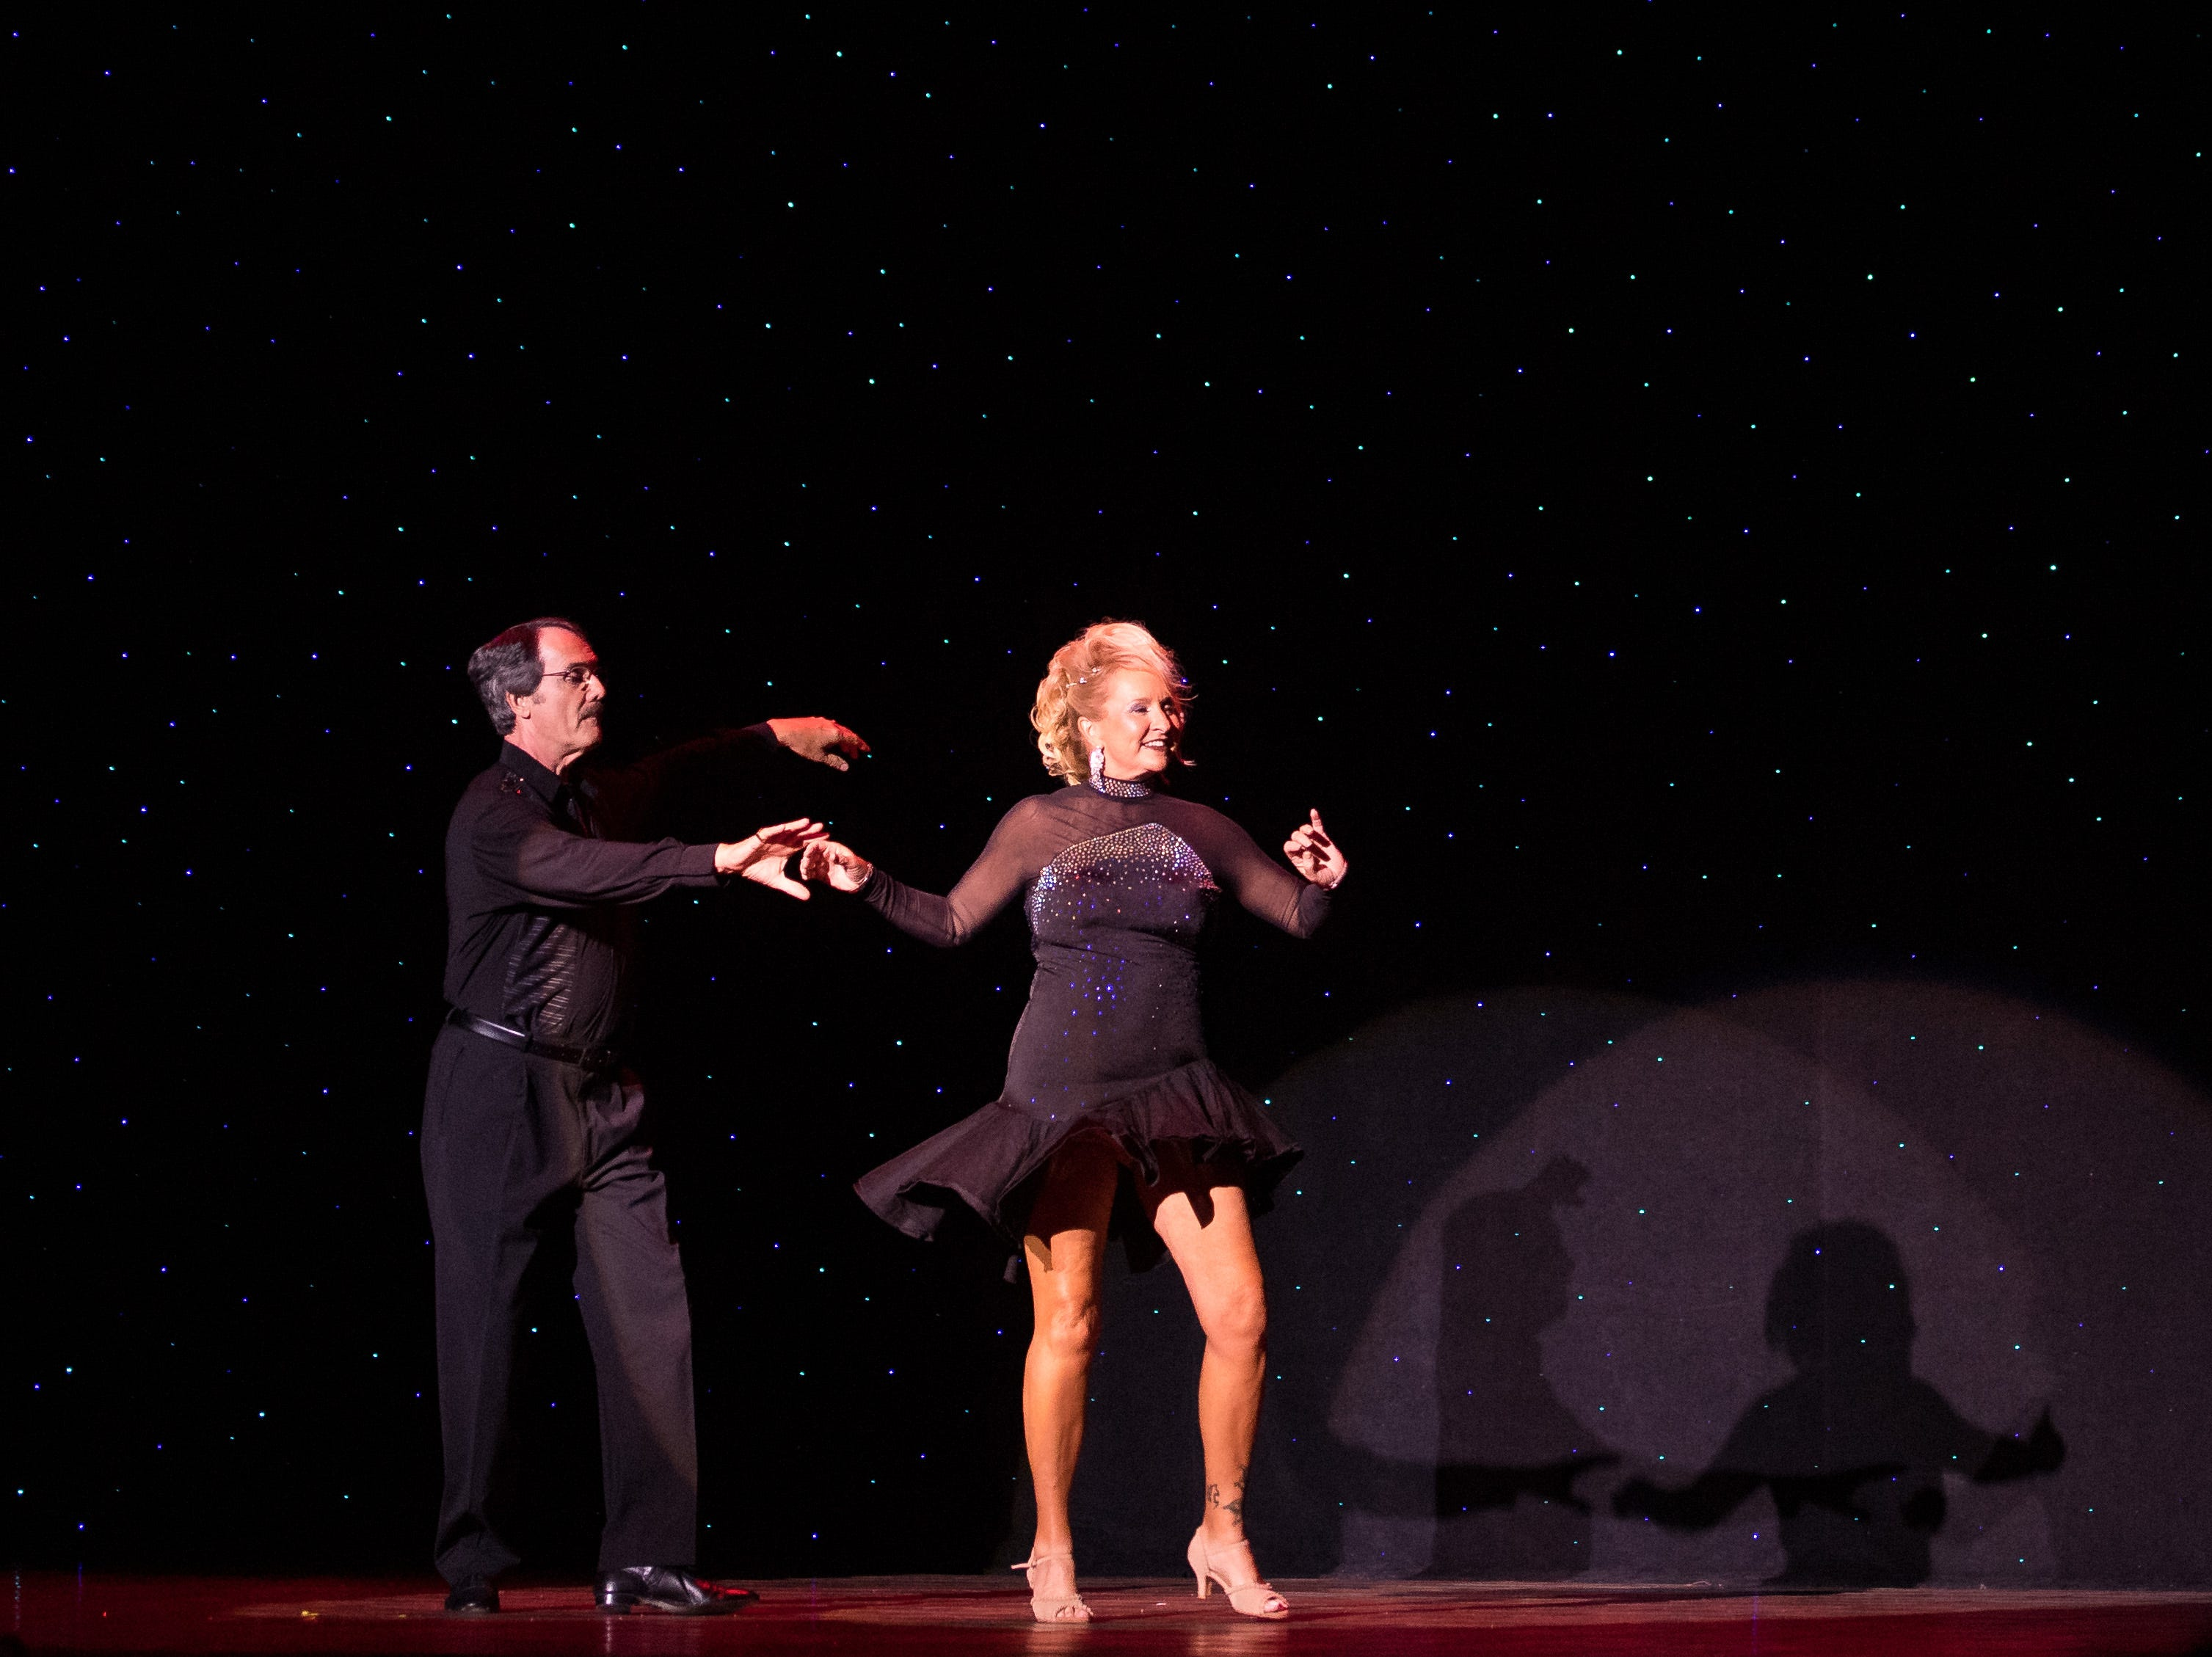 Top online fundraisers and first runners-up Kelly Donovan and Robert Scott perform at the 11th annual Dancing with Vero's Stars on Saturday, May 11, 2019, at Riverside Theatre in Vero Beach. Ten couples competed for a mirror ball trophy during the event, which raised funds for Indian River County Healthy Start Coalition.